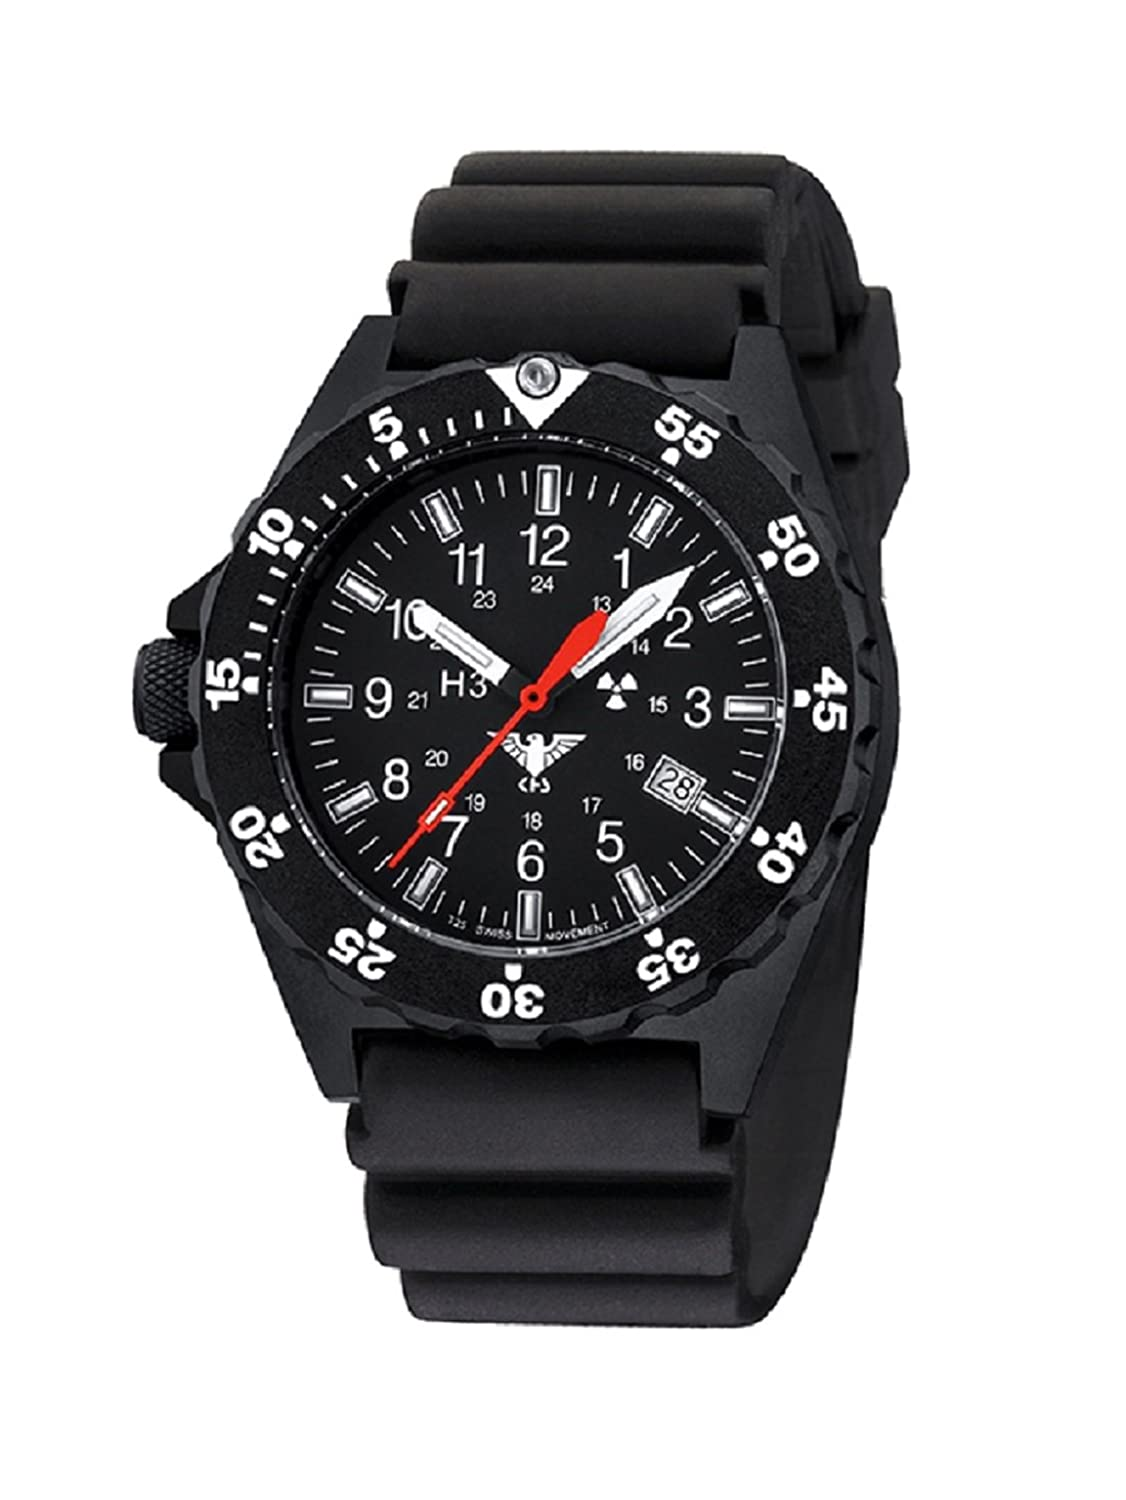 KHS Shooter KHS.SH.D Diverband inkl. Watch-Glass-Protection Schutzfolie